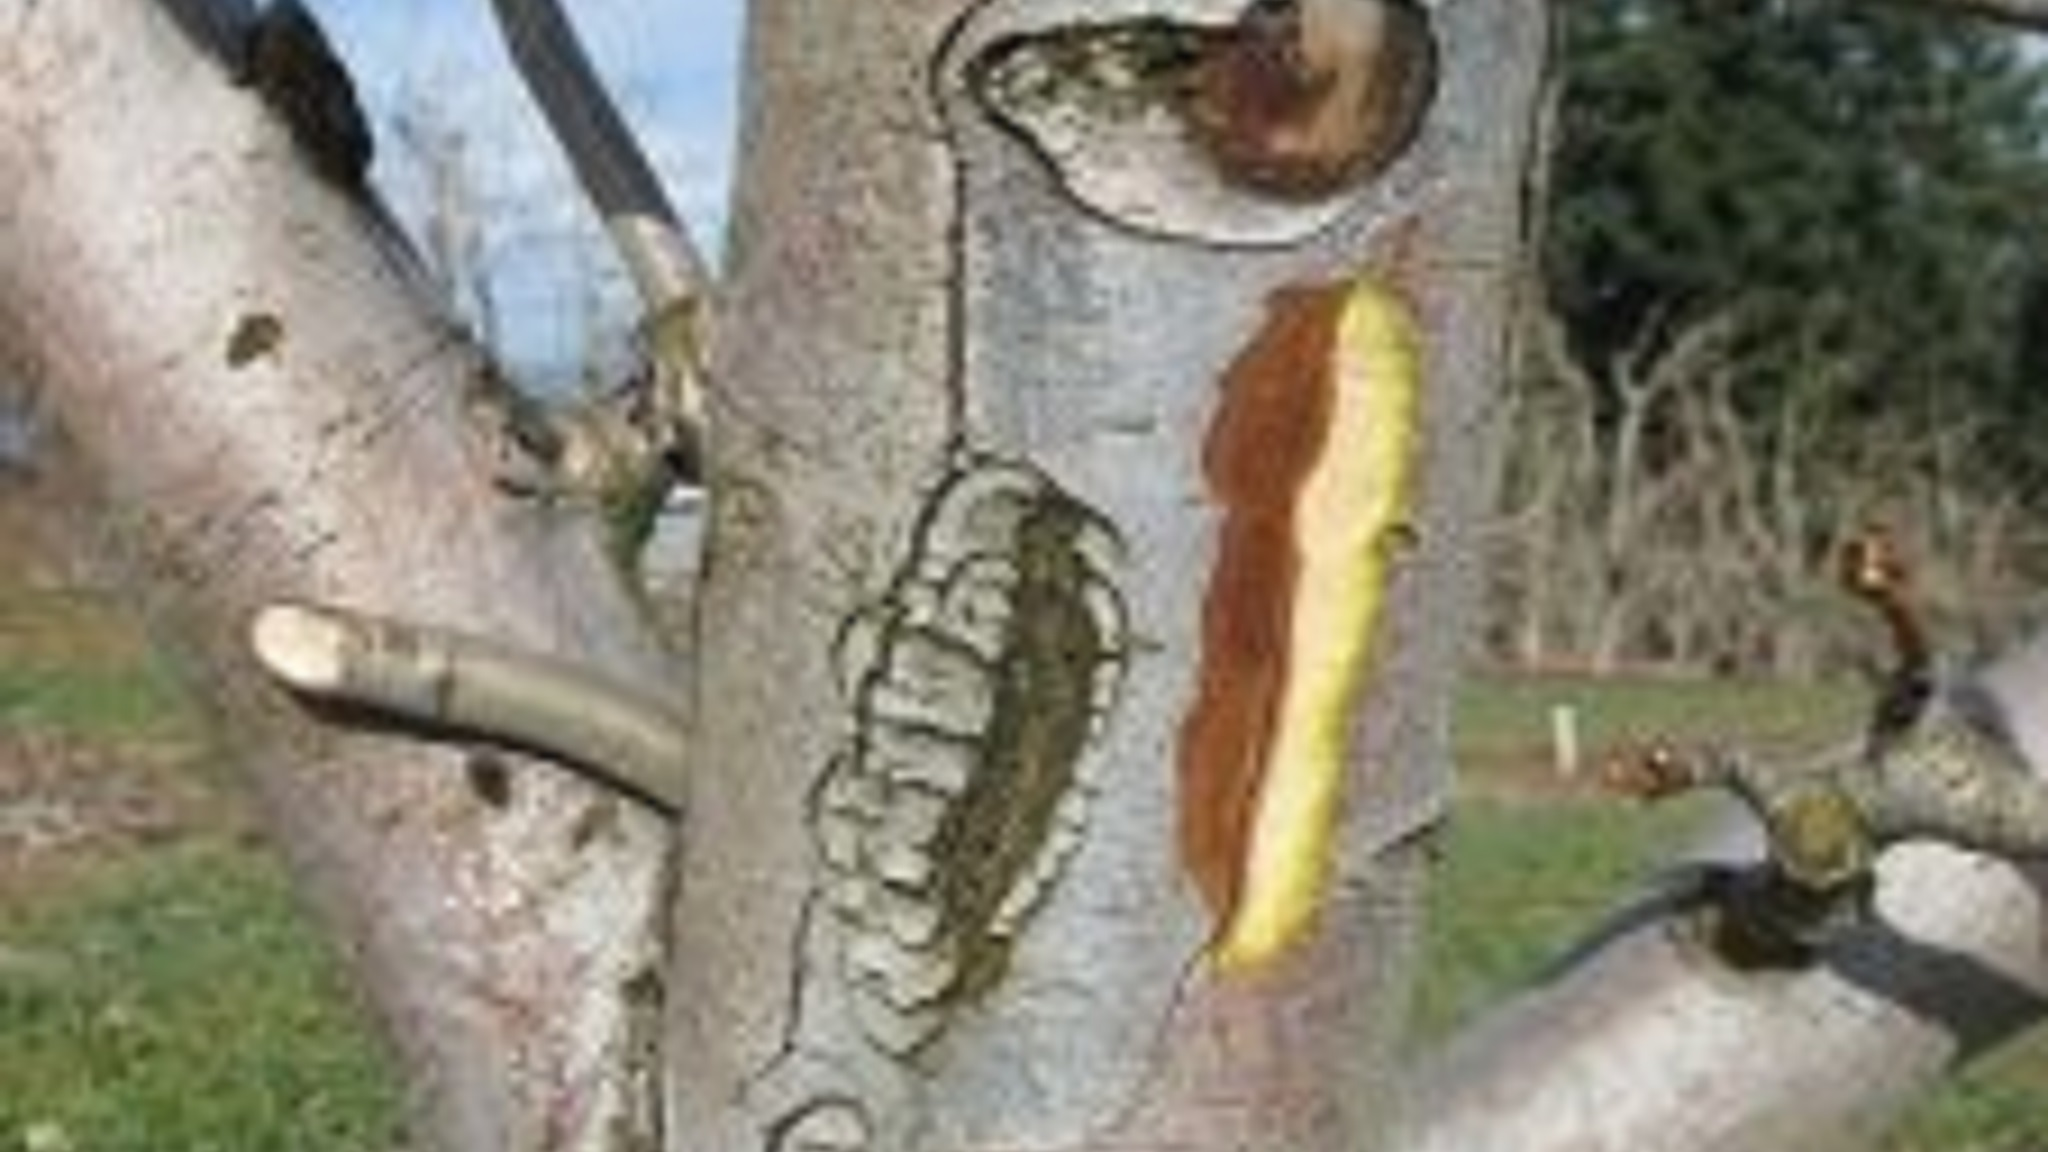 This agronomic image shows fire blight damage in pome trees.